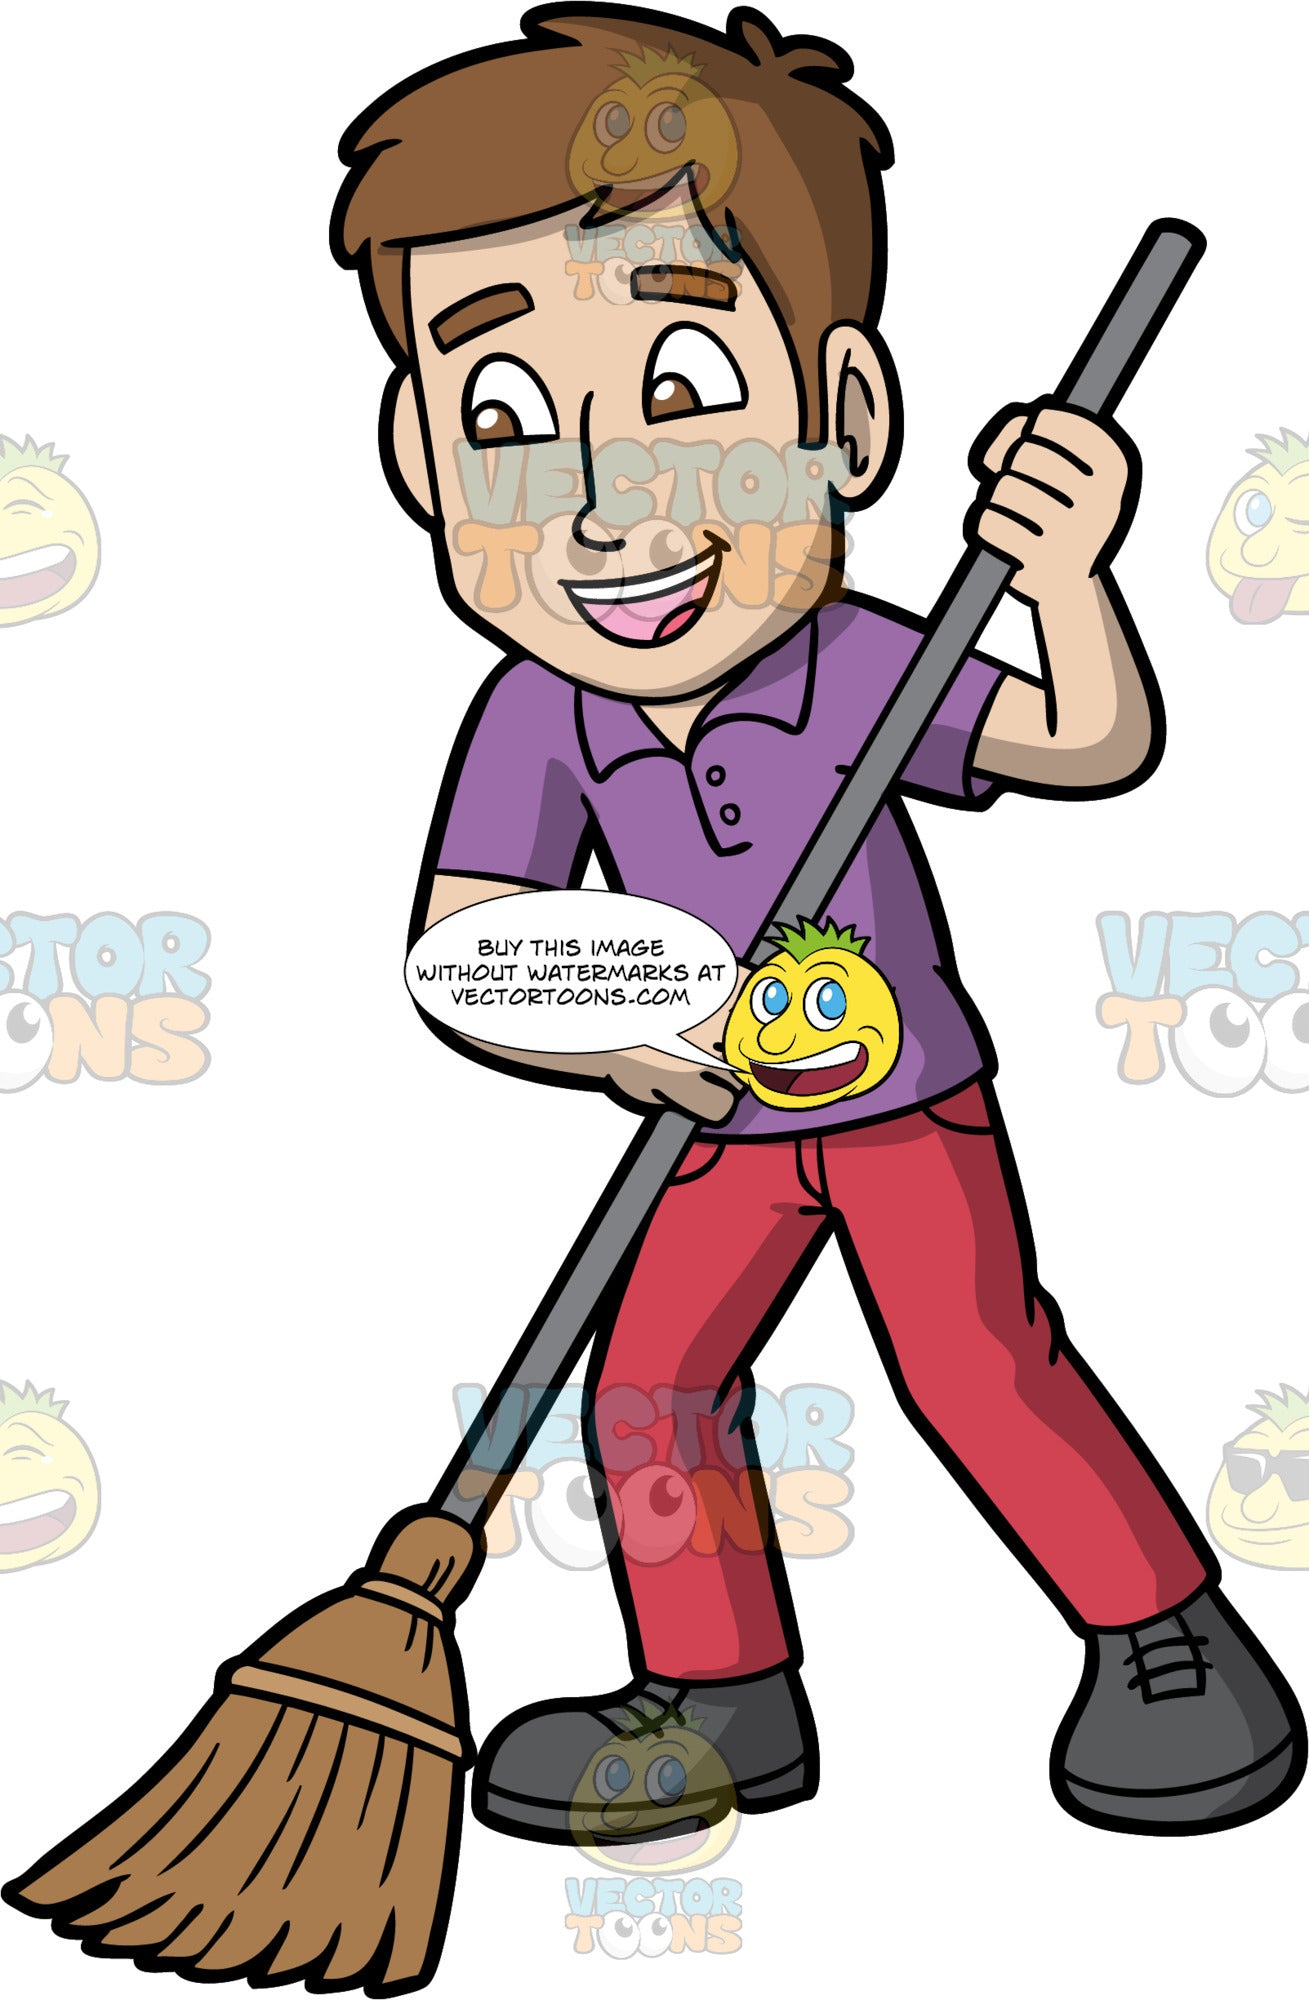 A Man Sweeping The Floor. A man with brown hair and eyes, wearing dark pink pants, a purple shirt, and gray shoes, holding onto a broom and sweeping the floor with it